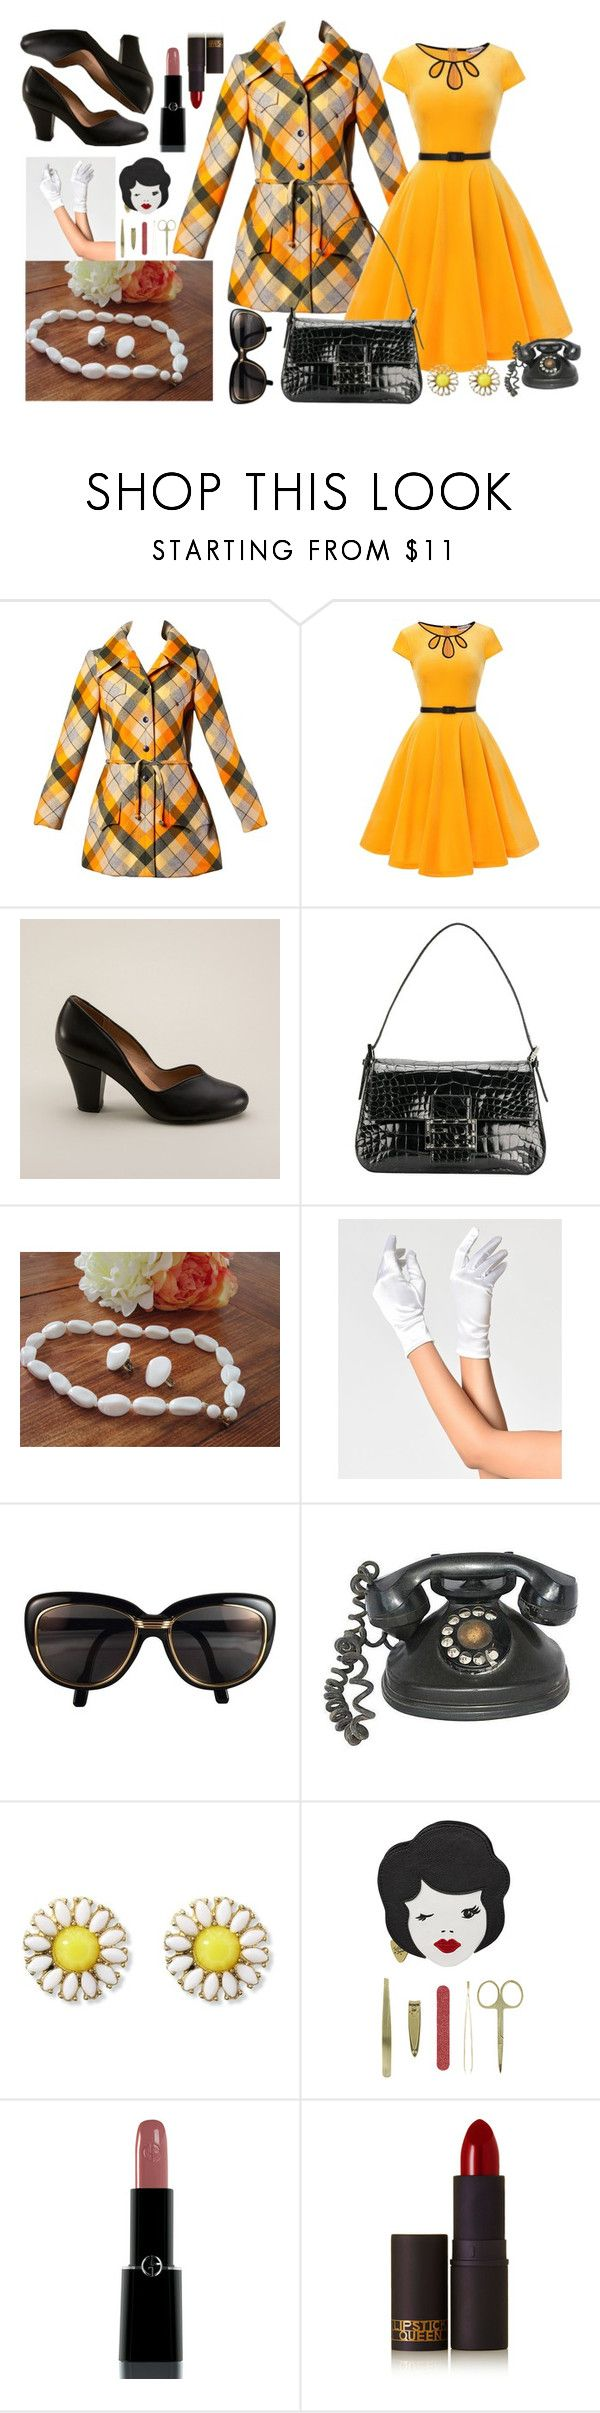 """Vintage"" by chalotteleah on Polyvore featuring André Laug, Royal Vintage, Fendi, Cartier, Tatty Devine, Giorgio Armani, Lipstick Queen and vintage"